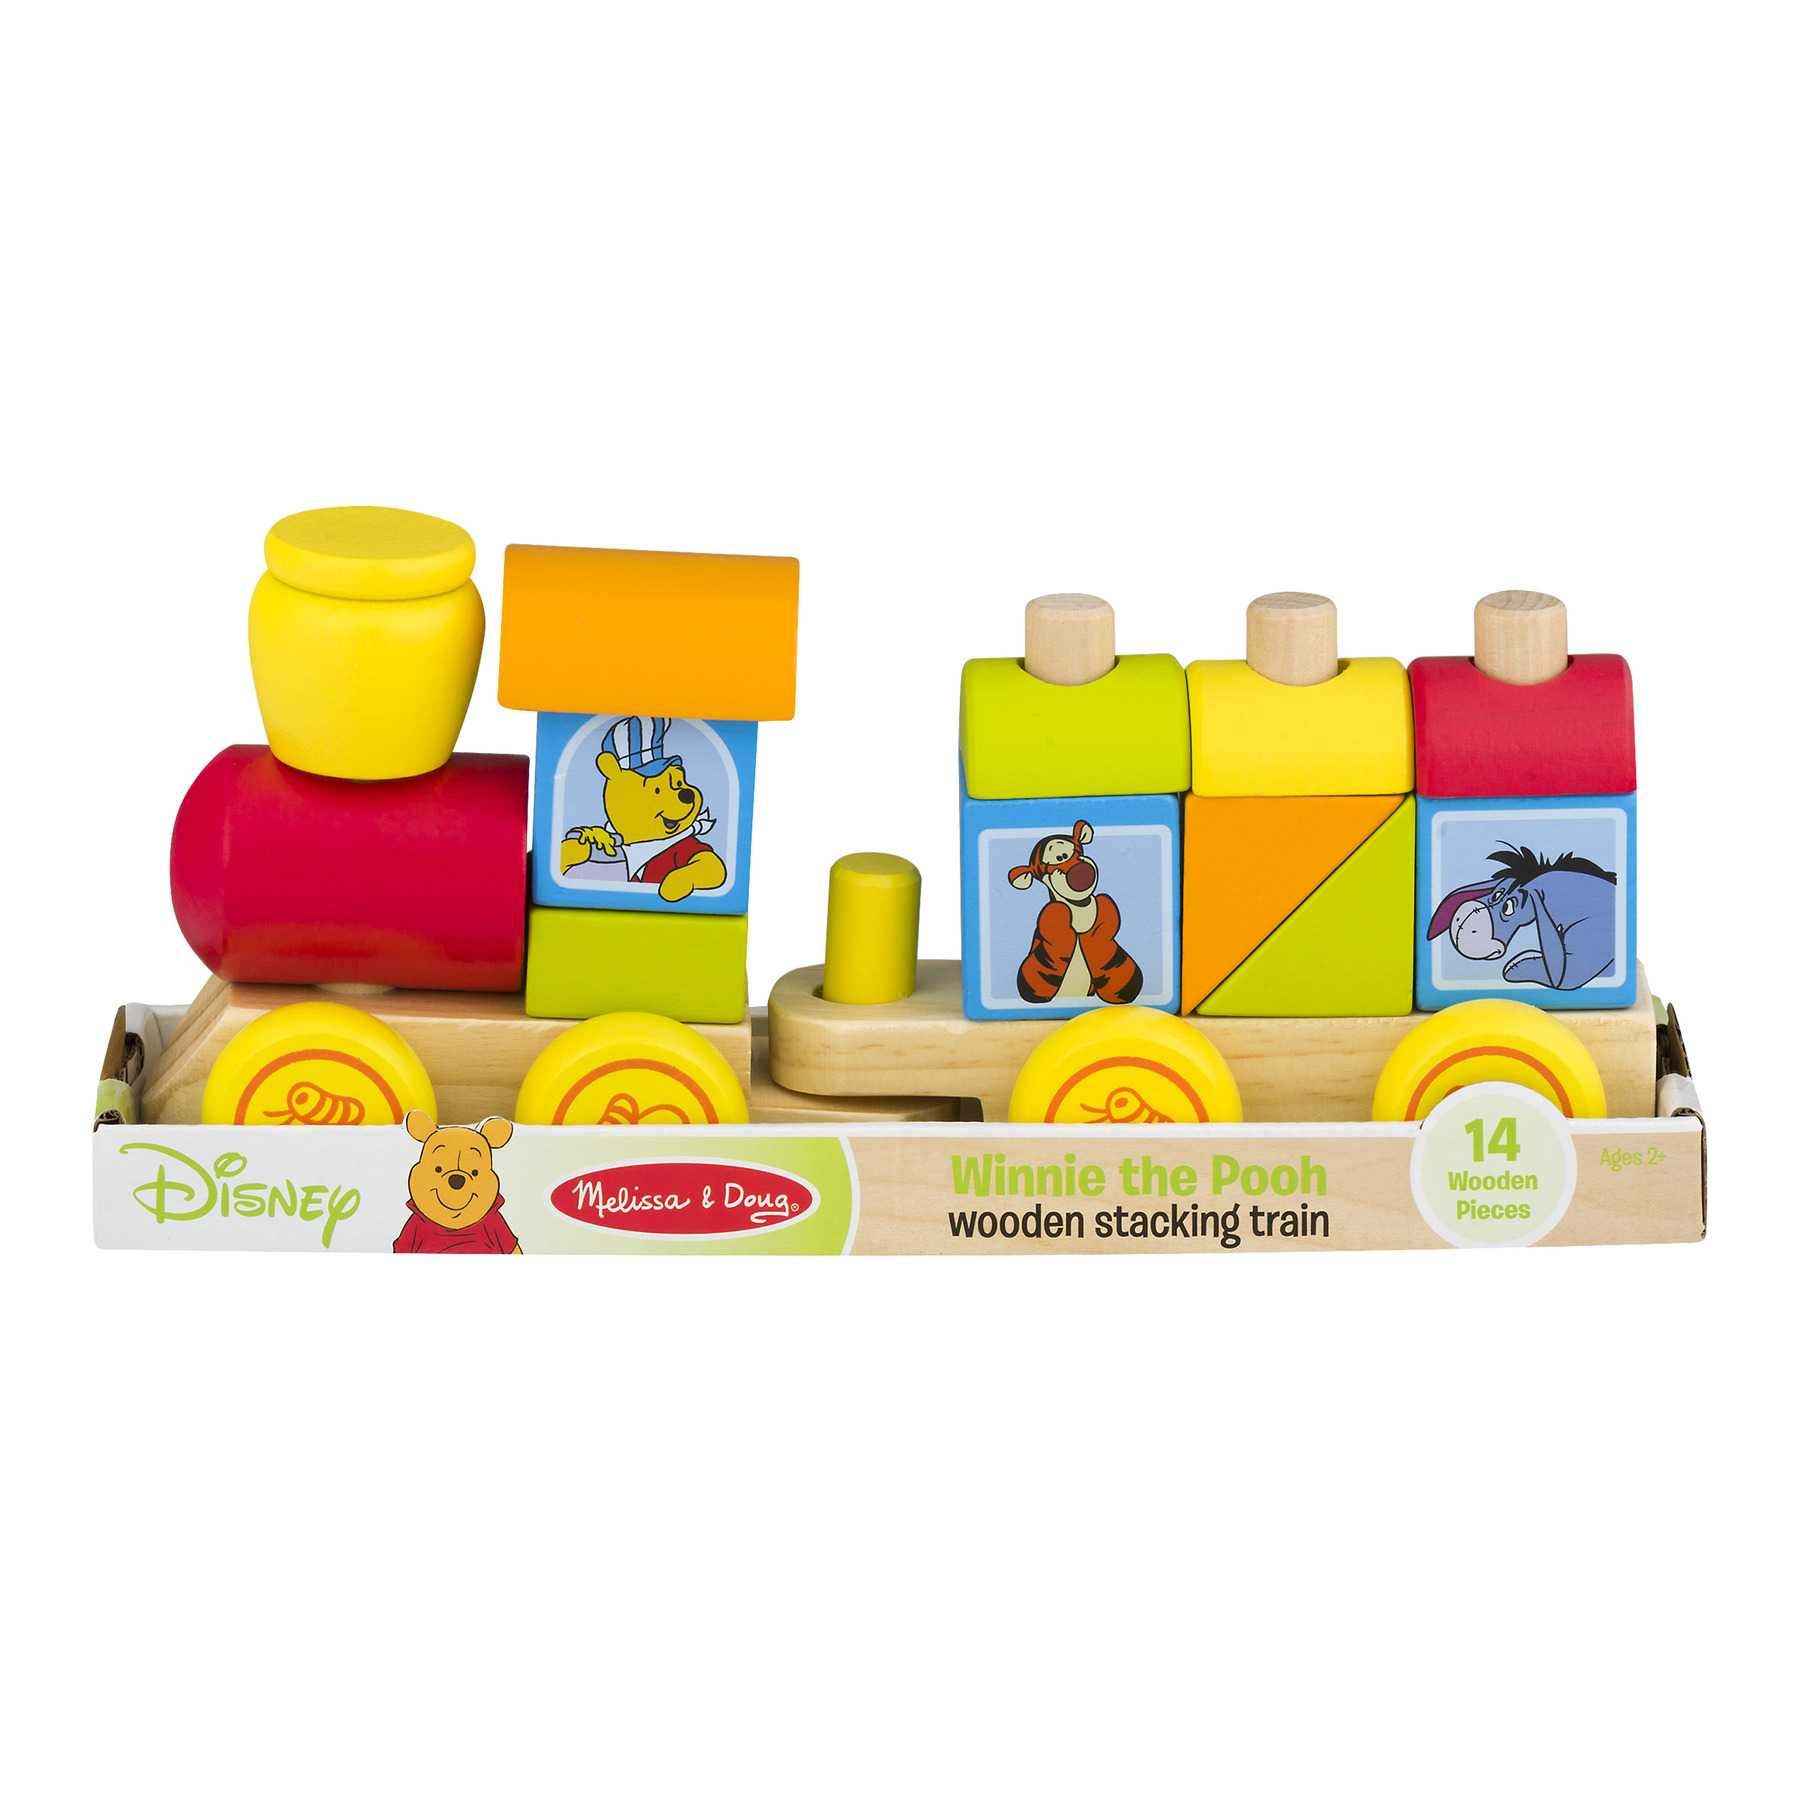 Disney Winnie The Pooh Wooden Stacking Train, 14.0 PIECE(S)